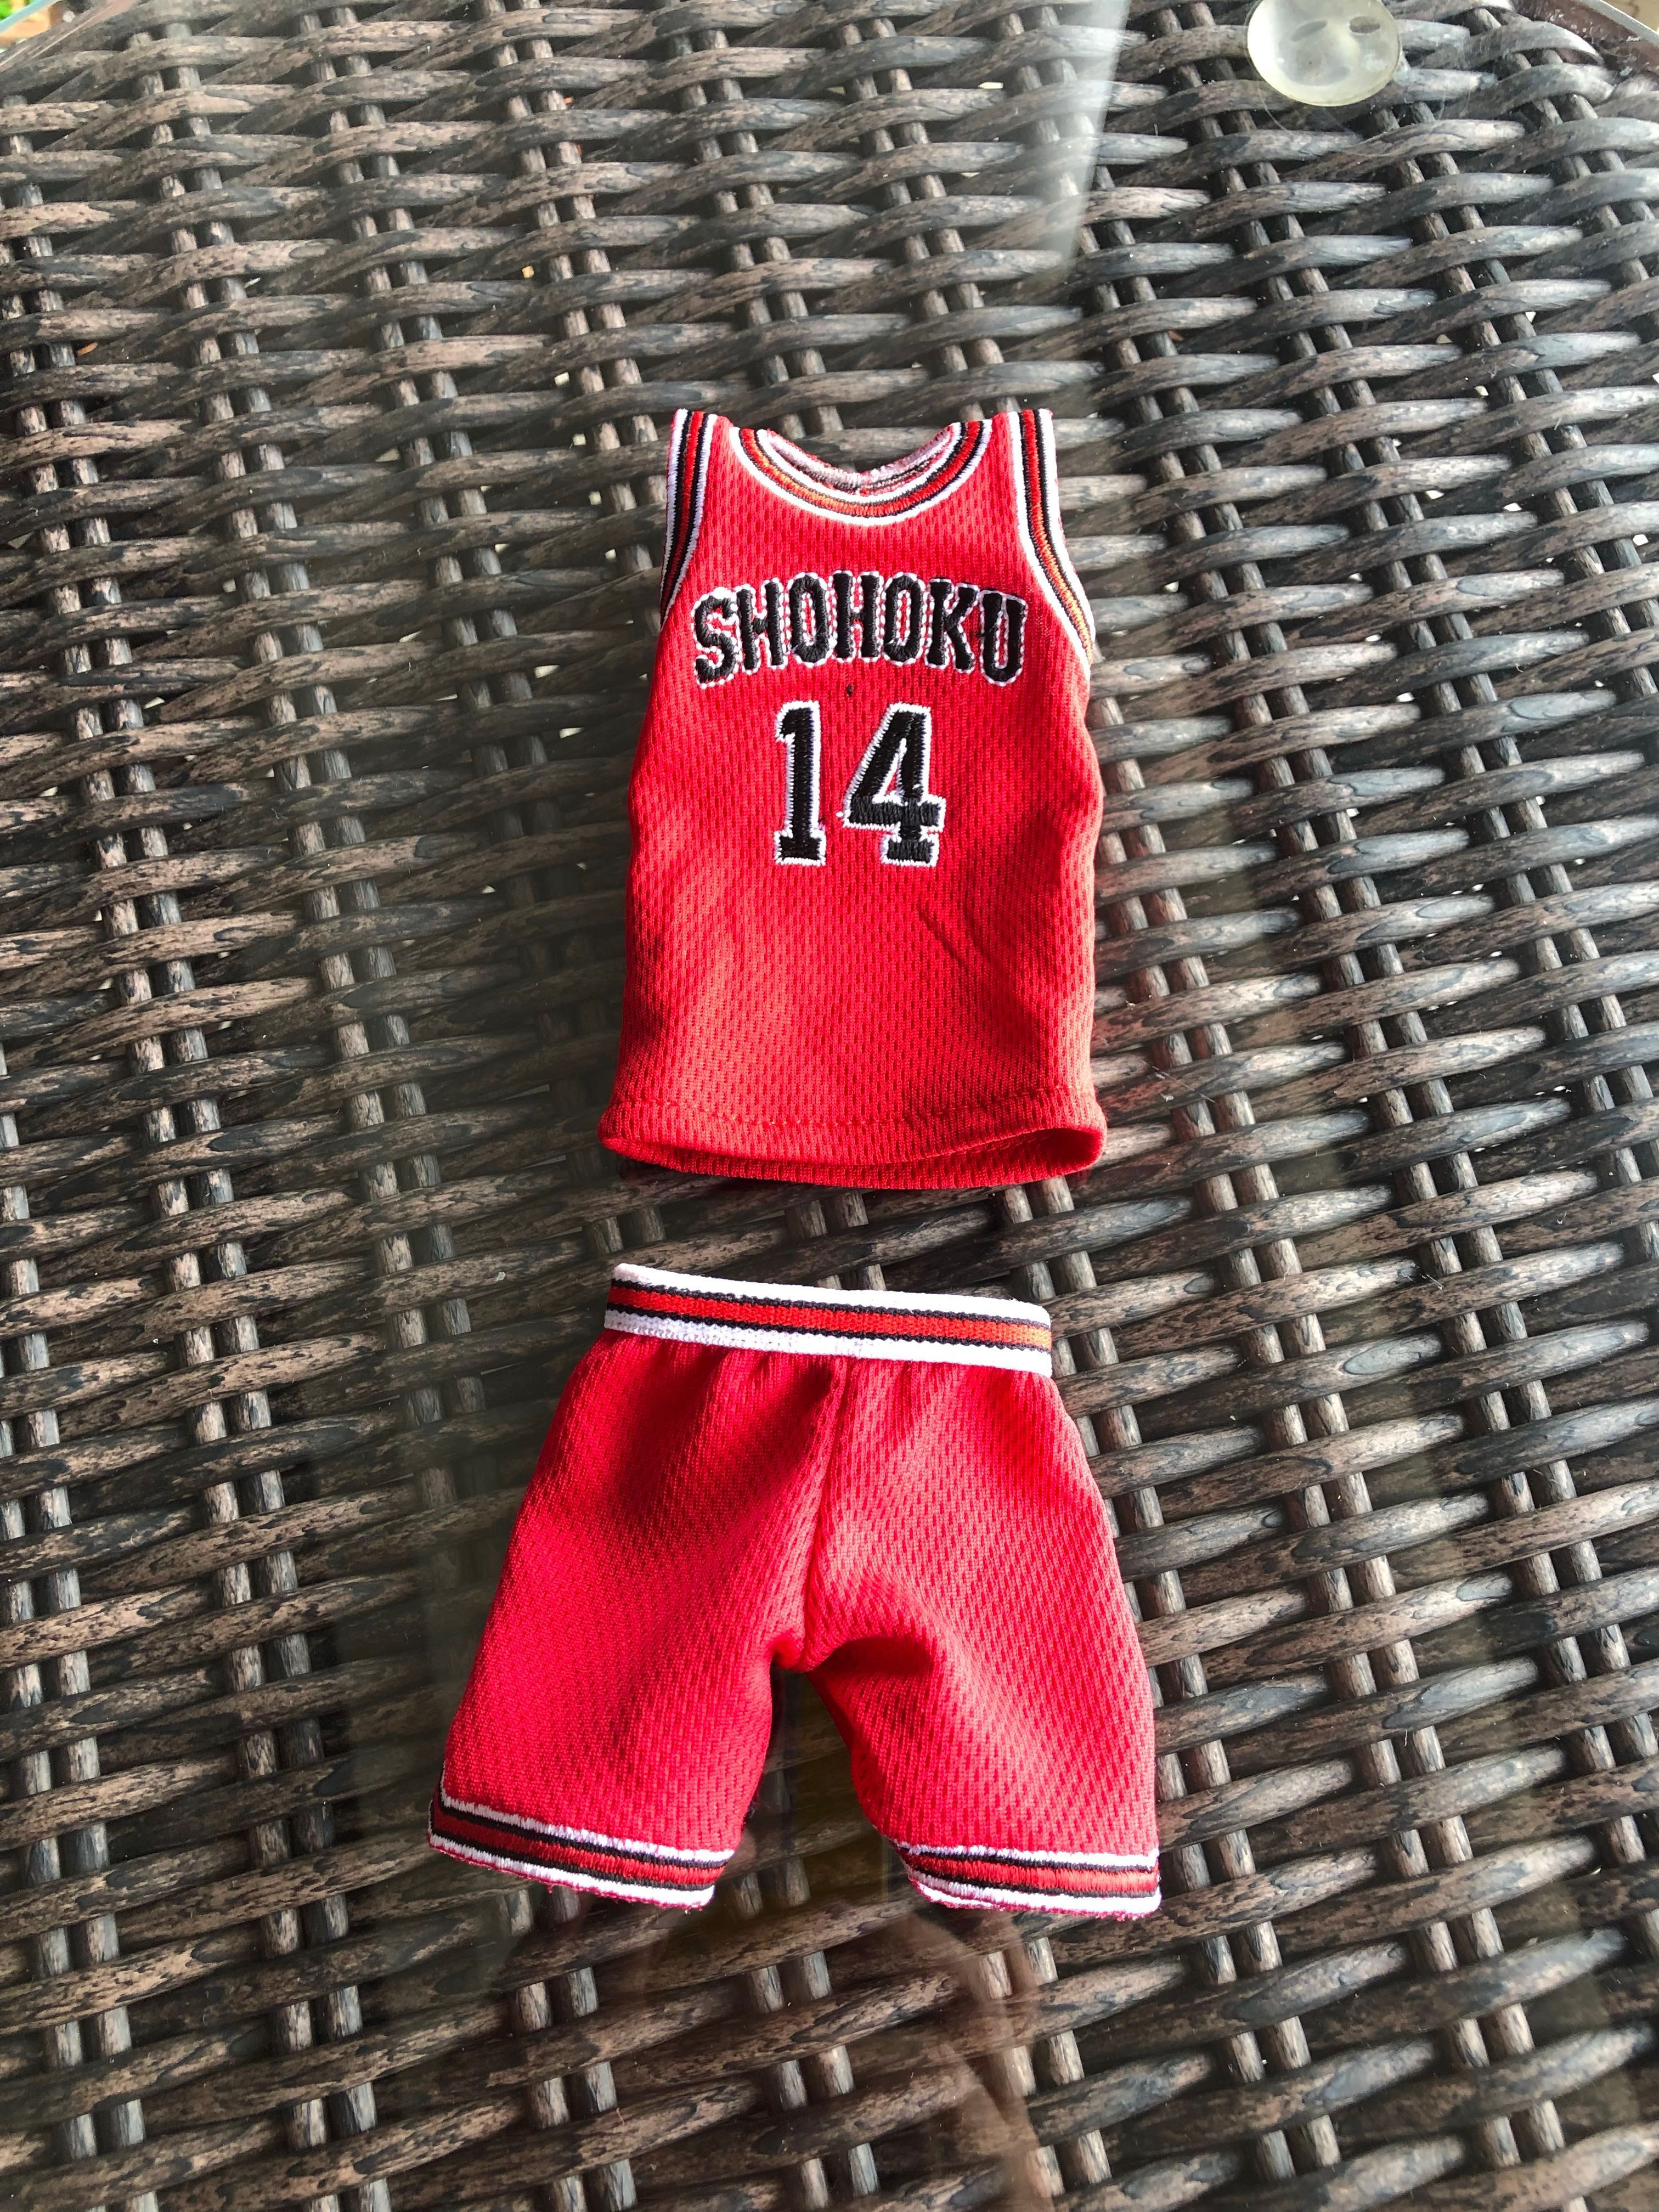 85492bd4095 1/6 Scale Slam Dunk Basketball Jersey Set, Toys & Games, Bricks & Figurines  on Carousell